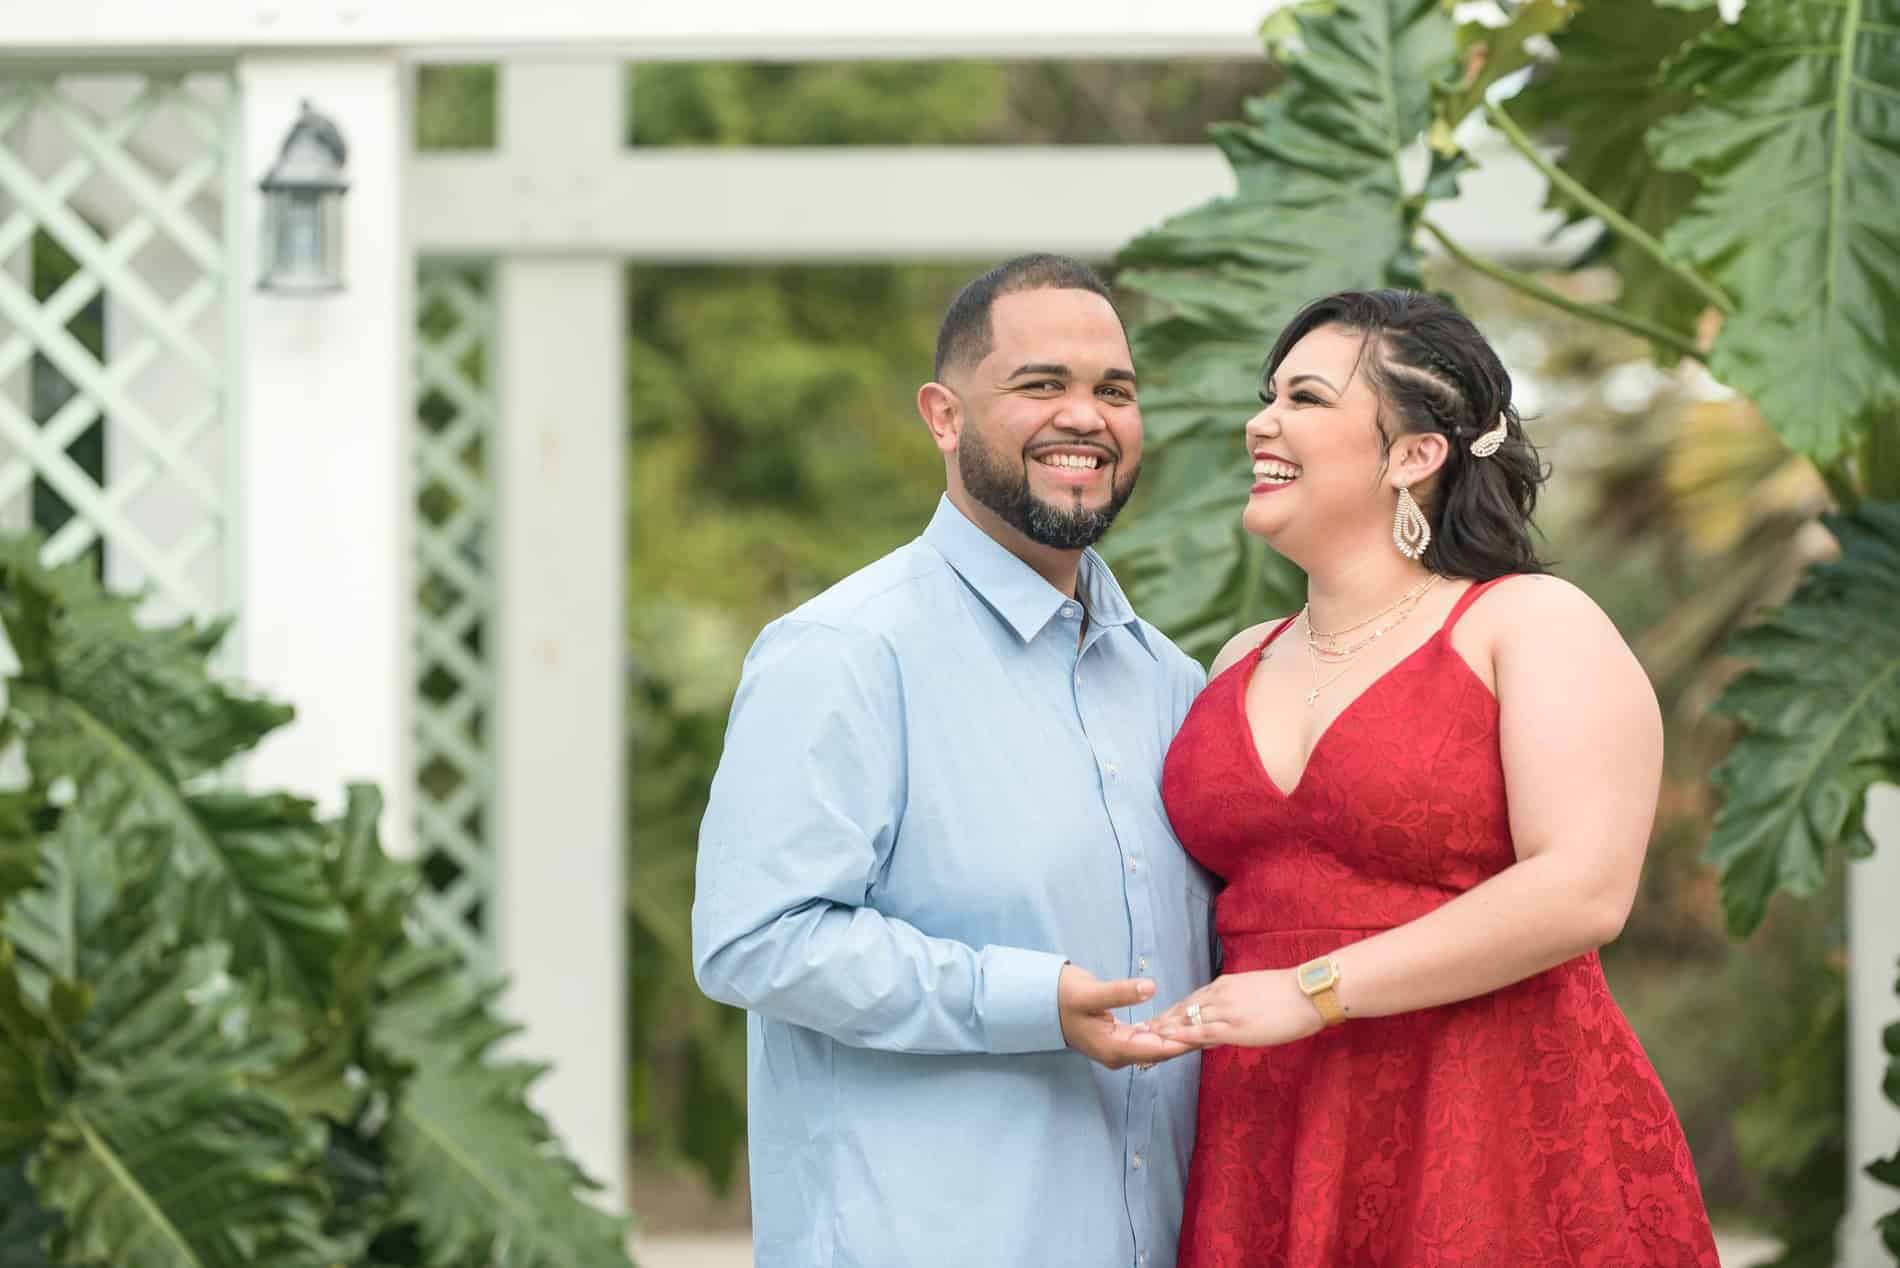 Enjoy your Engagement Photos in Leu Gardens